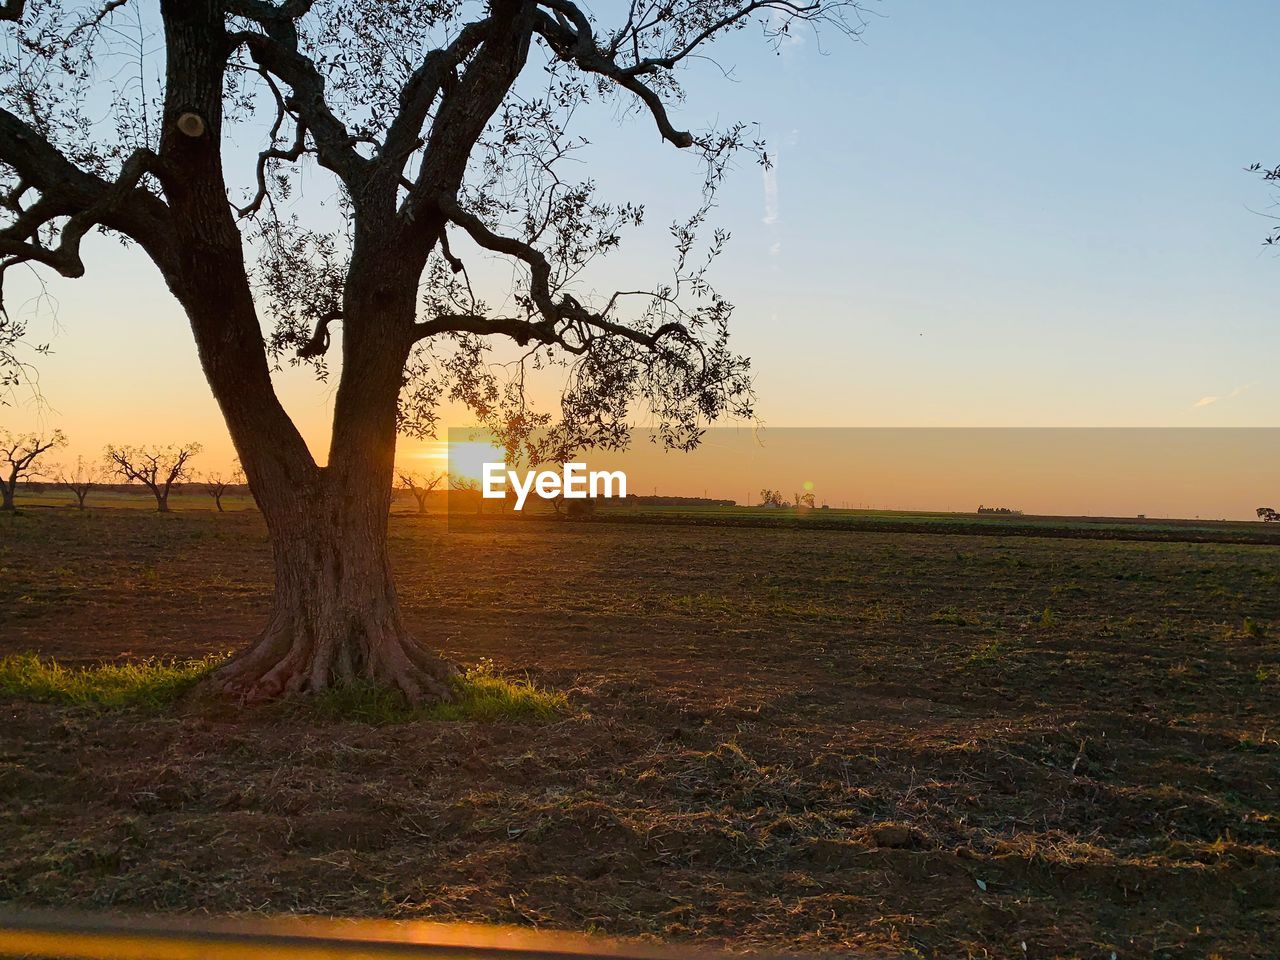 sky, sunset, tree, plant, tranquility, beauty in nature, scenics - nature, tranquil scene, environment, field, landscape, land, nature, sun, non-urban scene, no people, sunlight, orange color, idyllic, growth, outdoors, lens flare